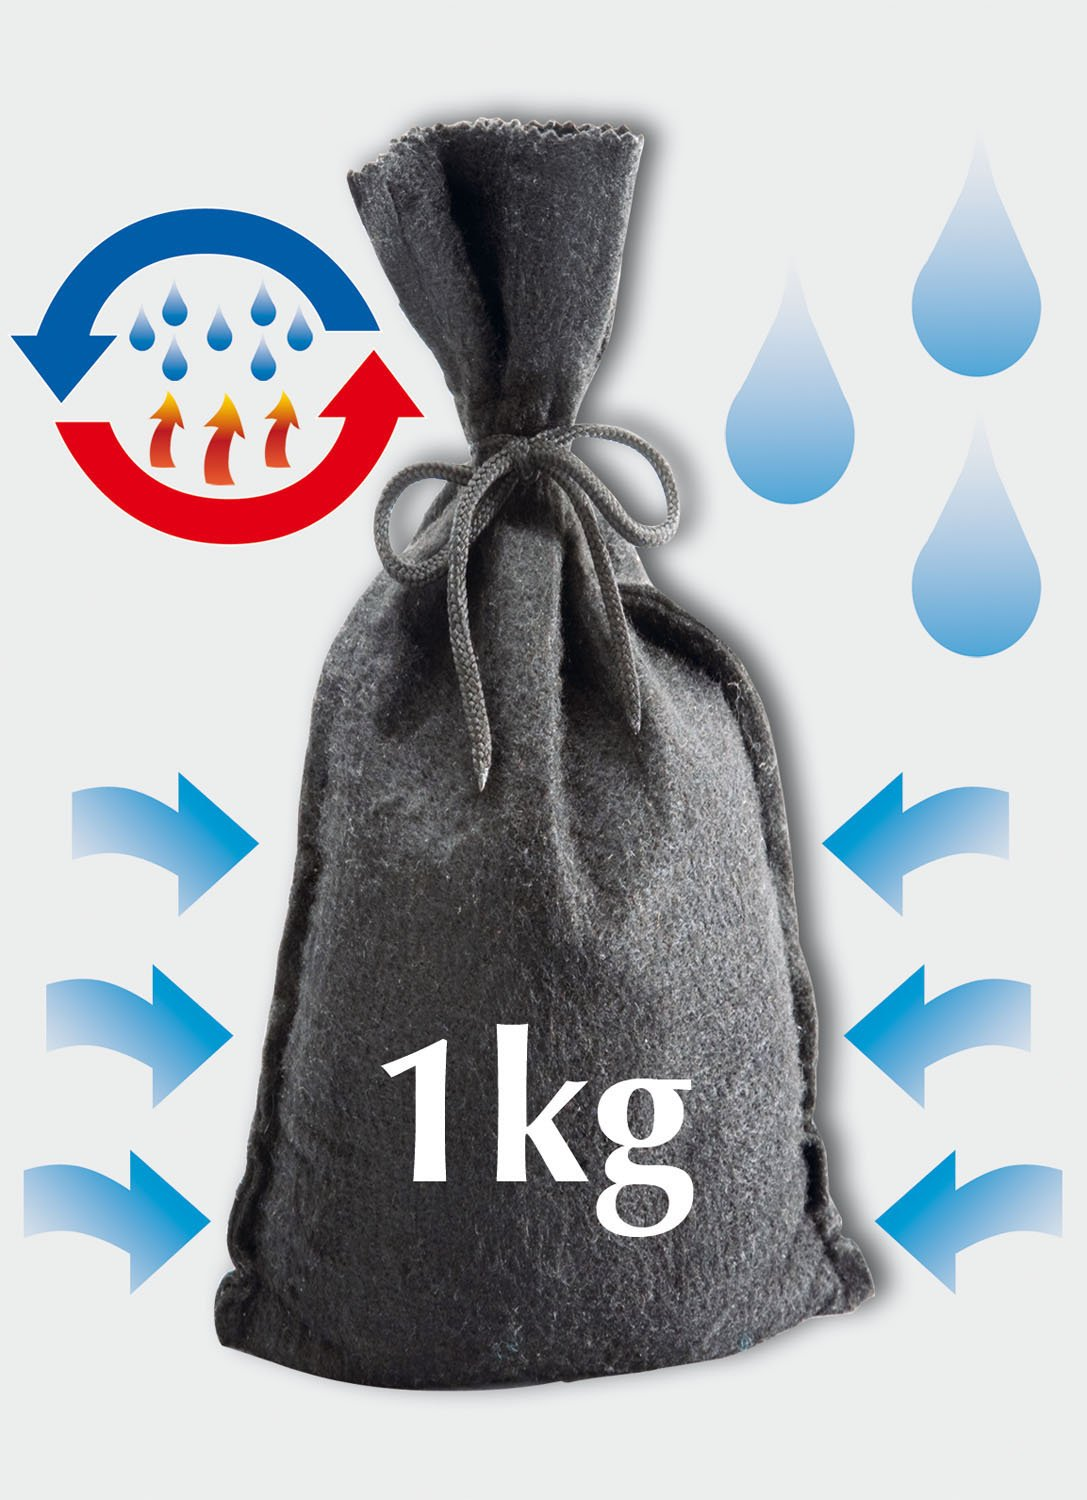 Wenko 77799100 - Bolsa absorbe humedad re utilizable, absorbe hasta 850 ml (1 kg, 17 x 25 x 10 cm), color antracita: Amazon.es: Hogar